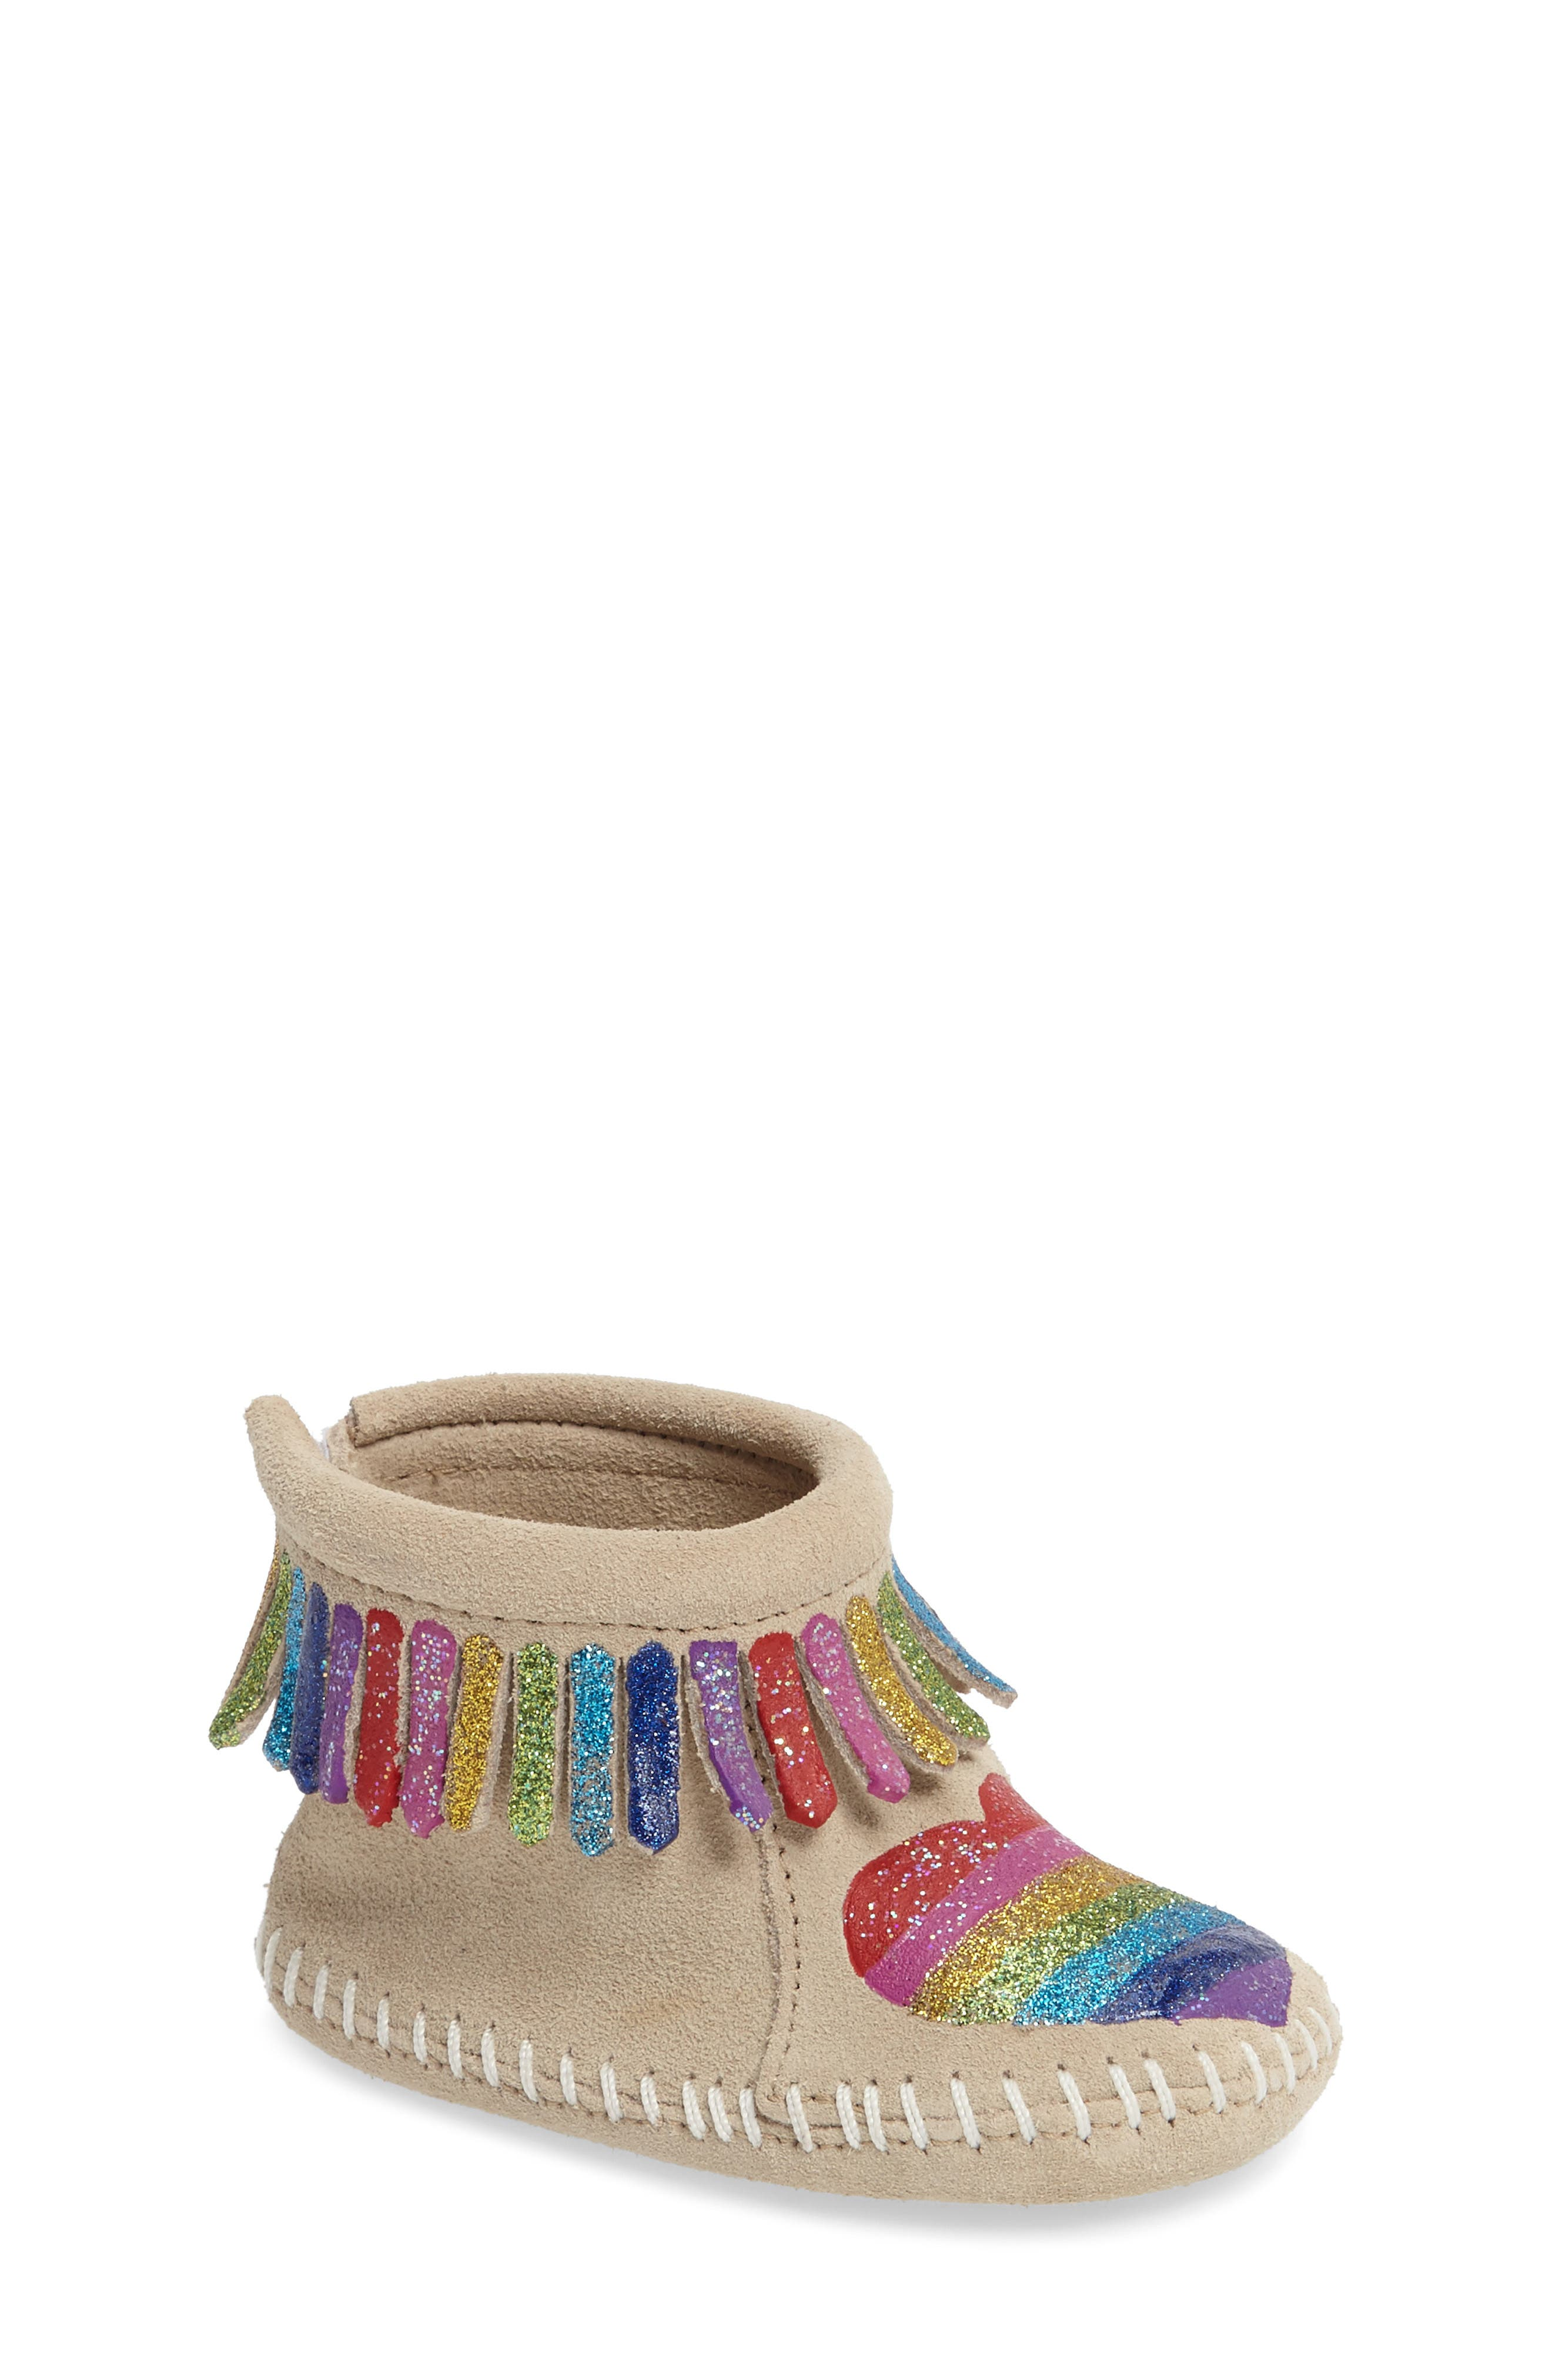 x Free Range Mama Love One Another Bootie,                             Main thumbnail 1, color,                             STONE